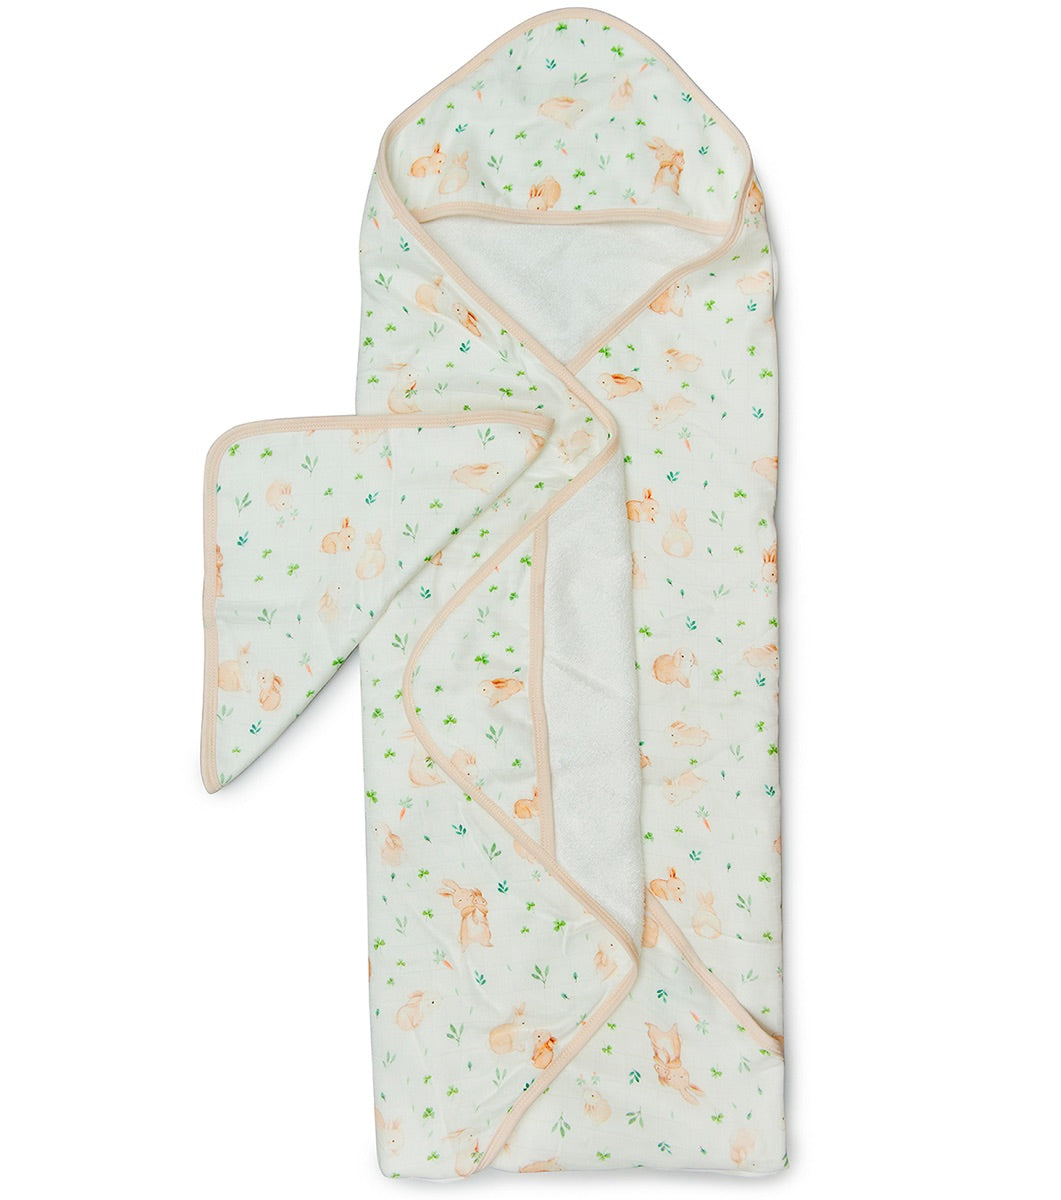 Lou Lou Lollipop hooded towel set bunny meadow